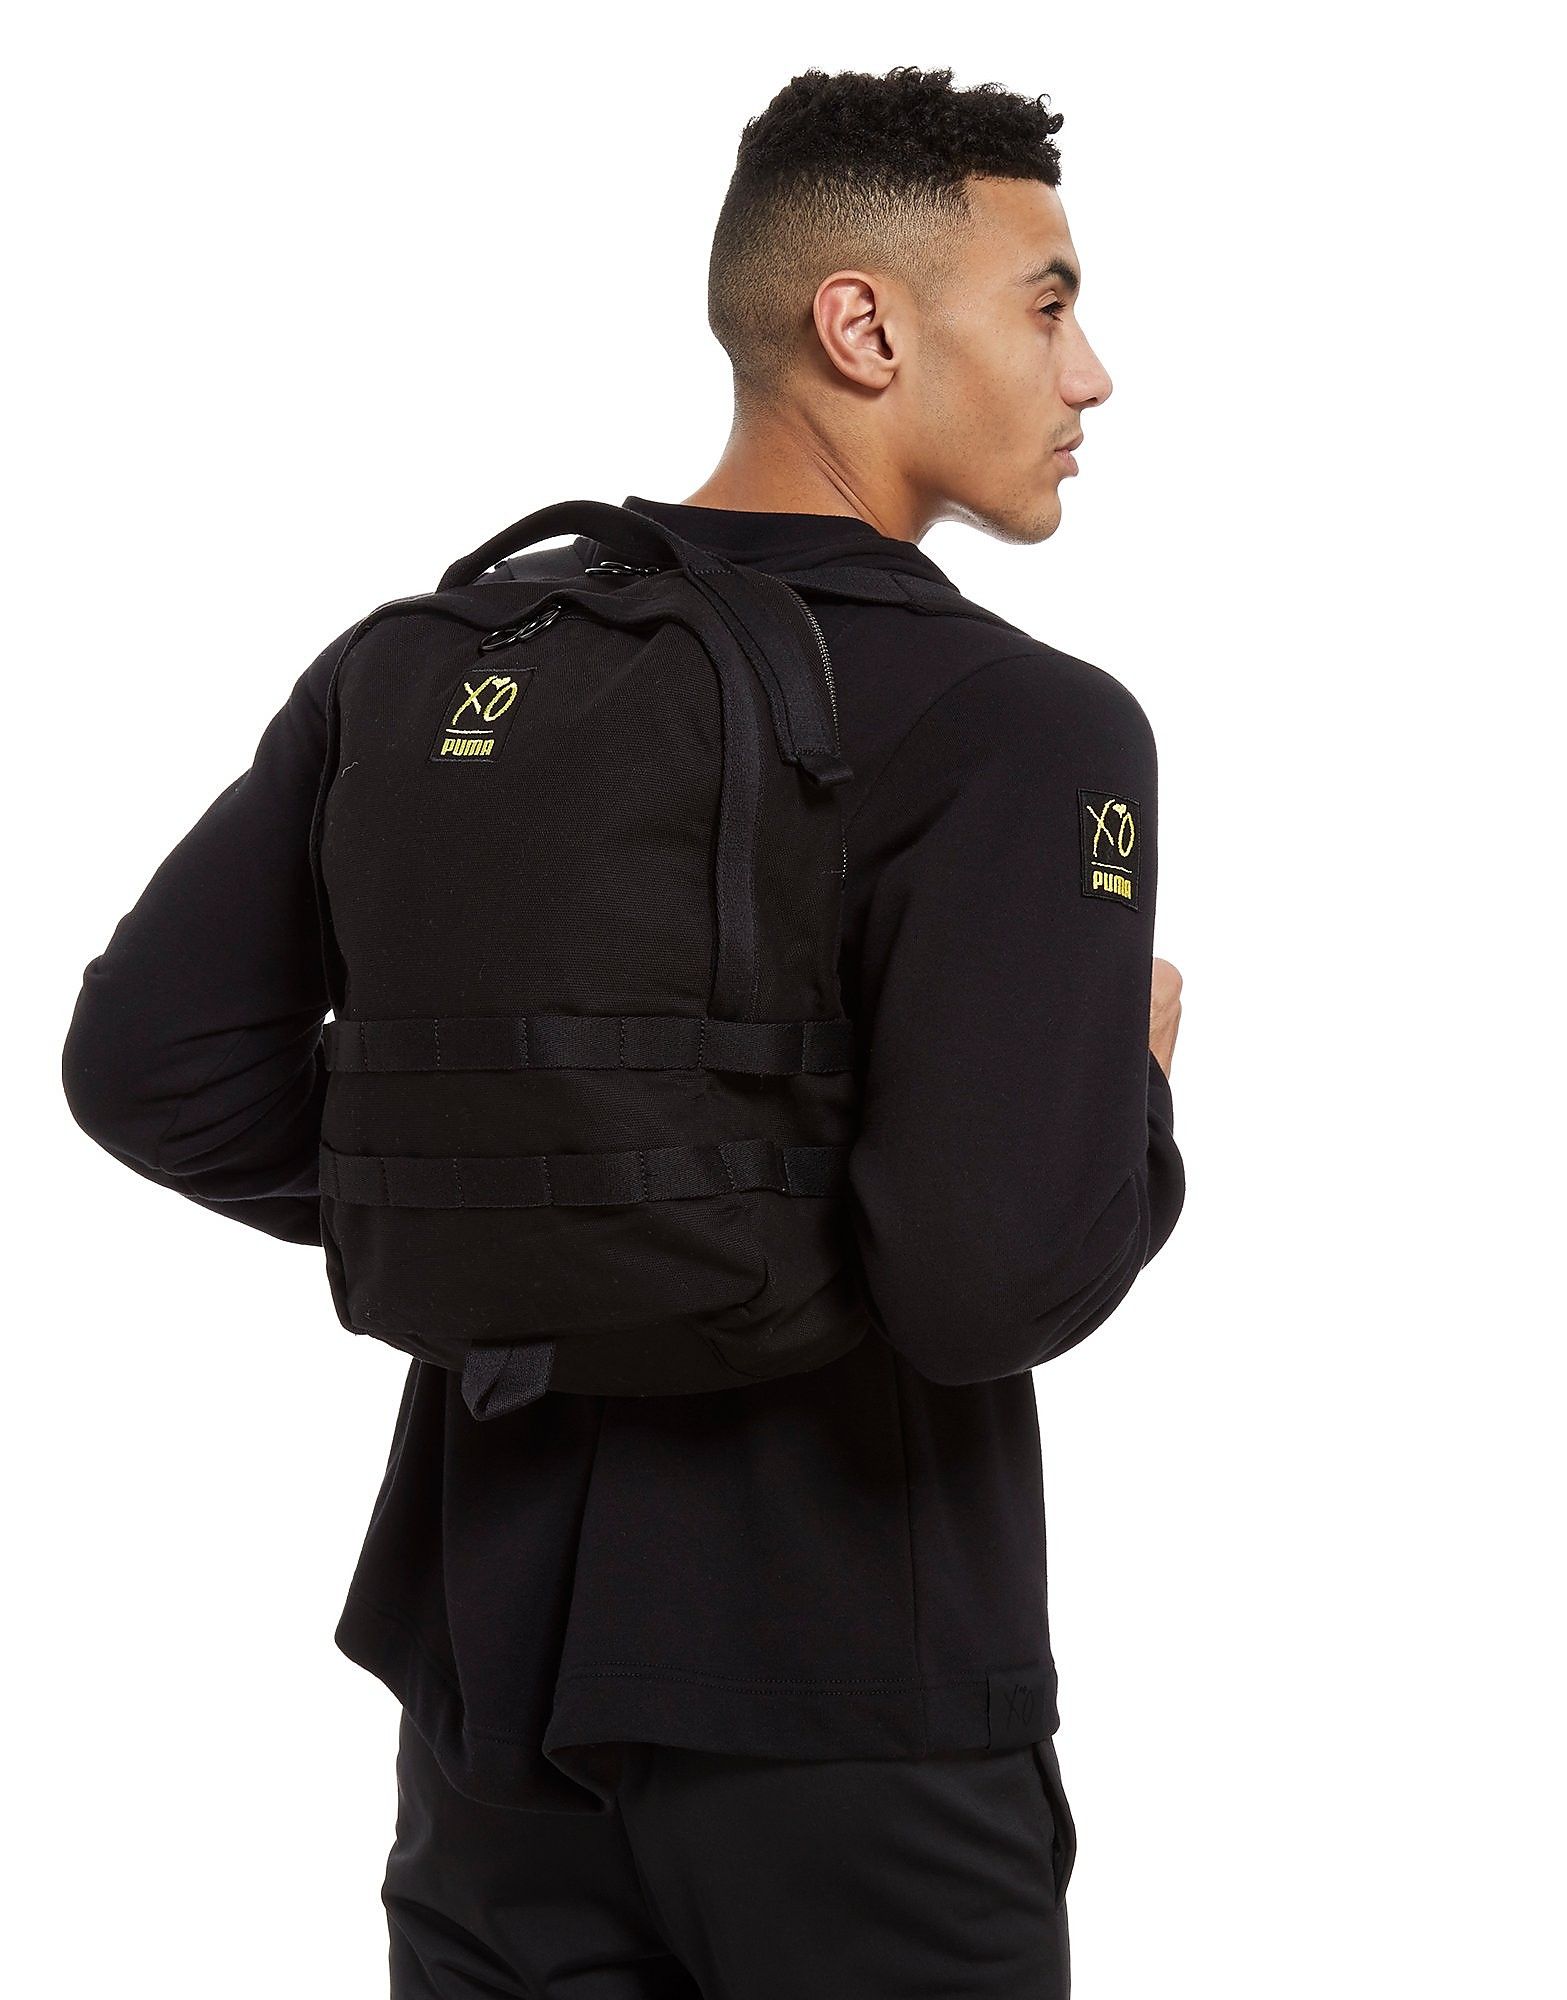 PUMA XO Backpack